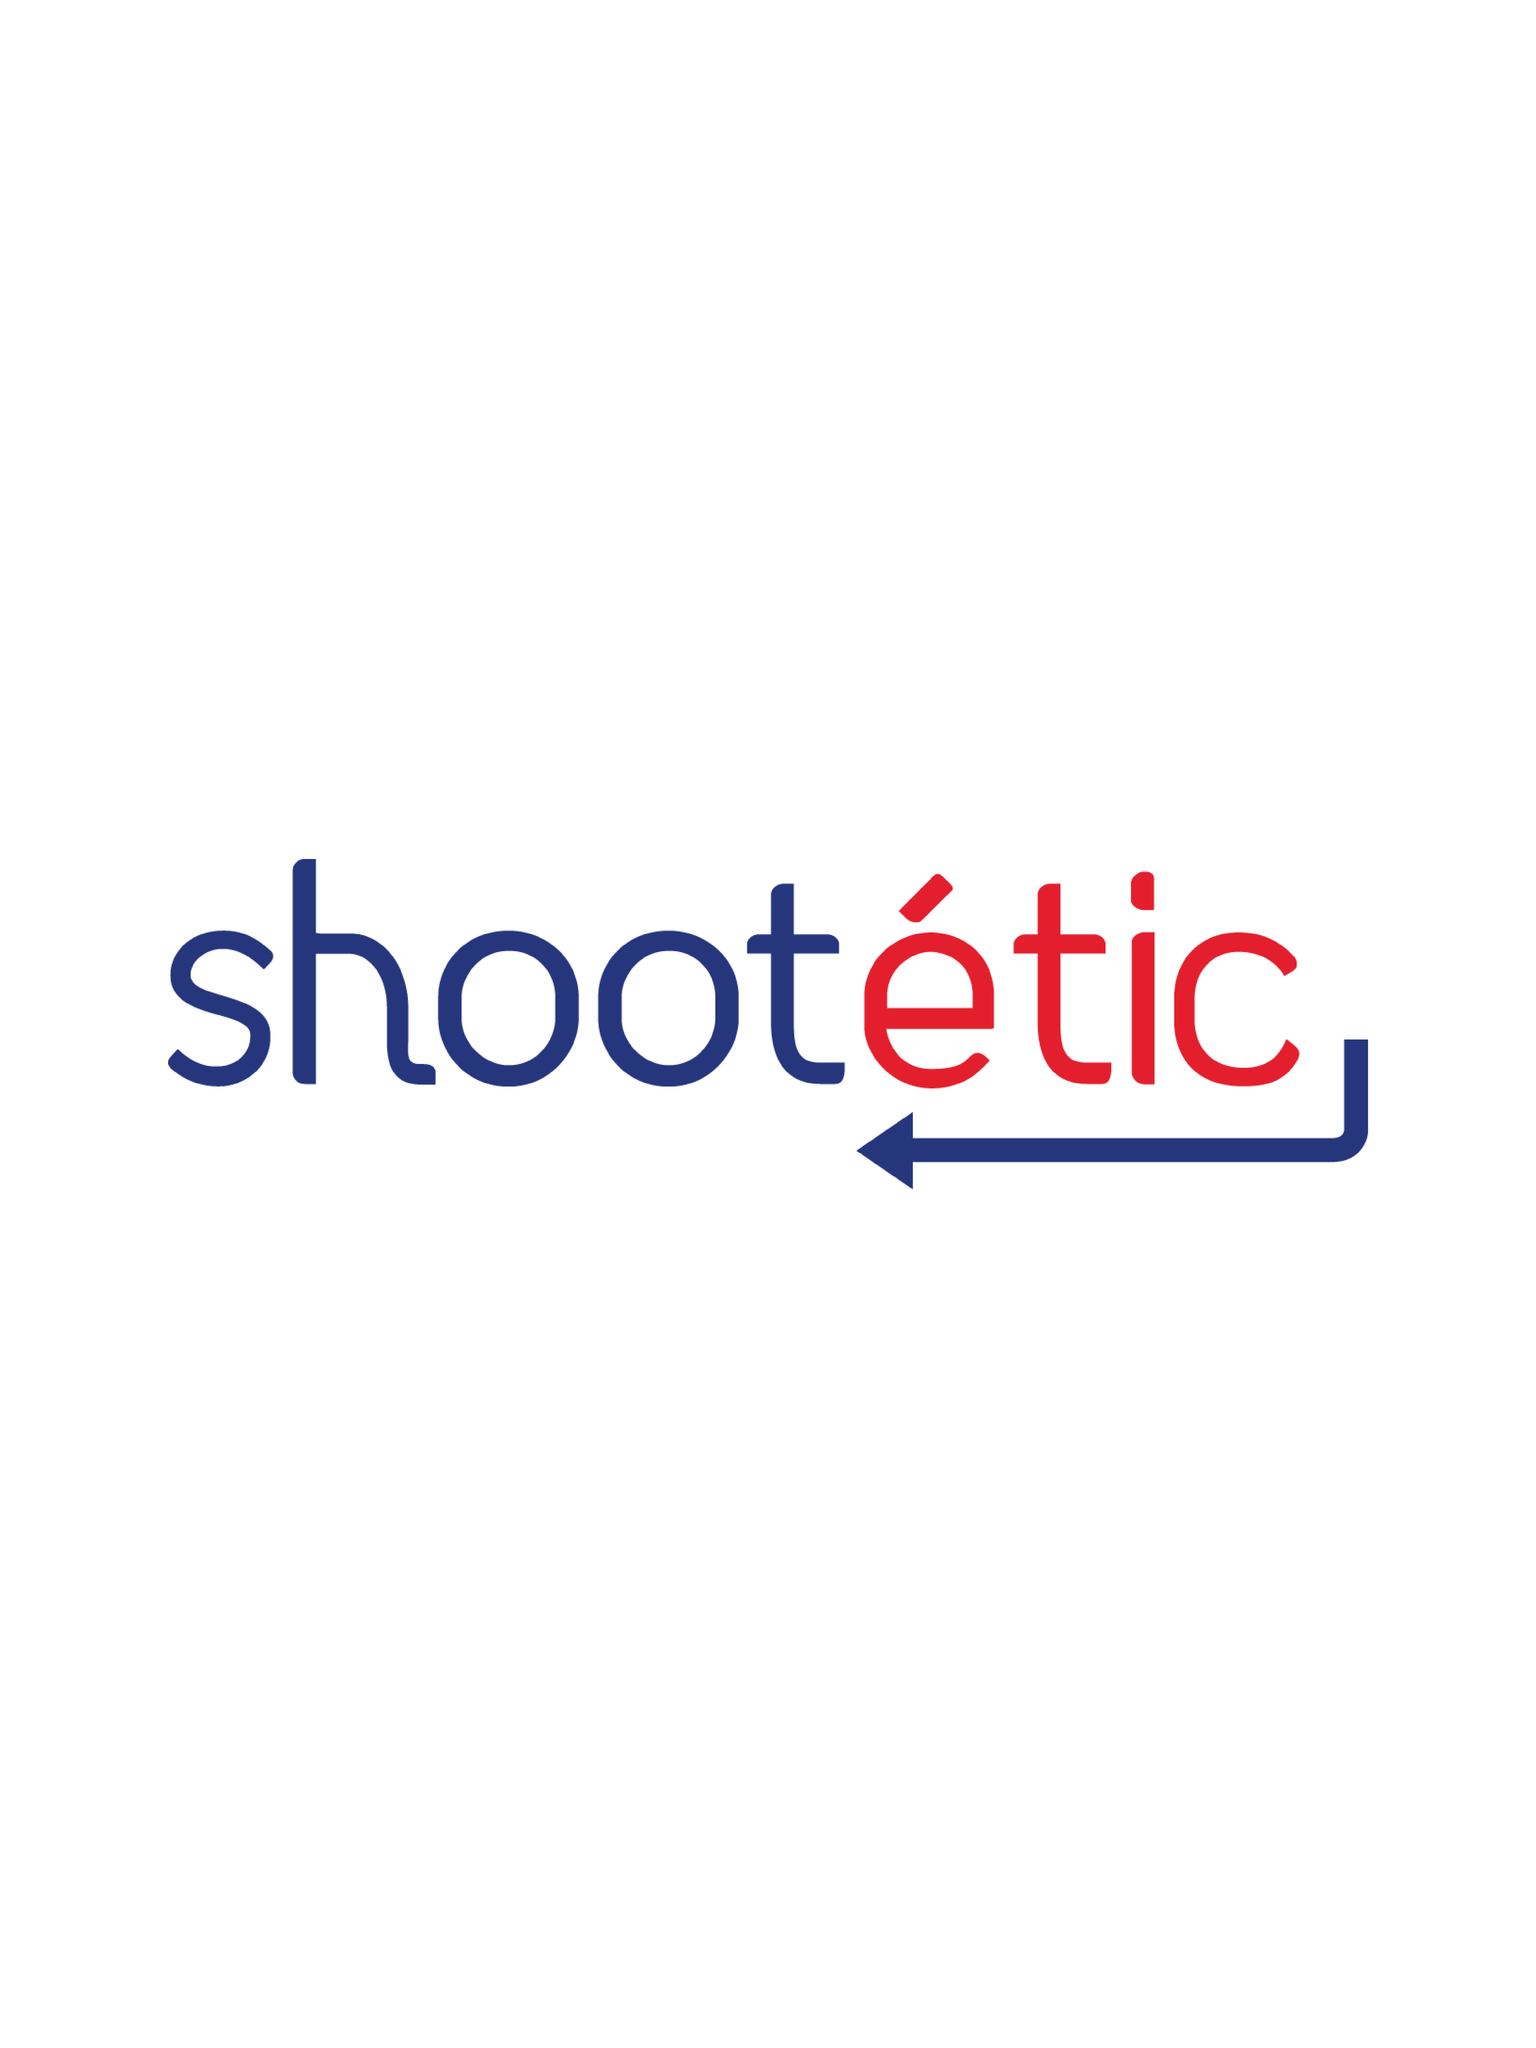 Shootetic